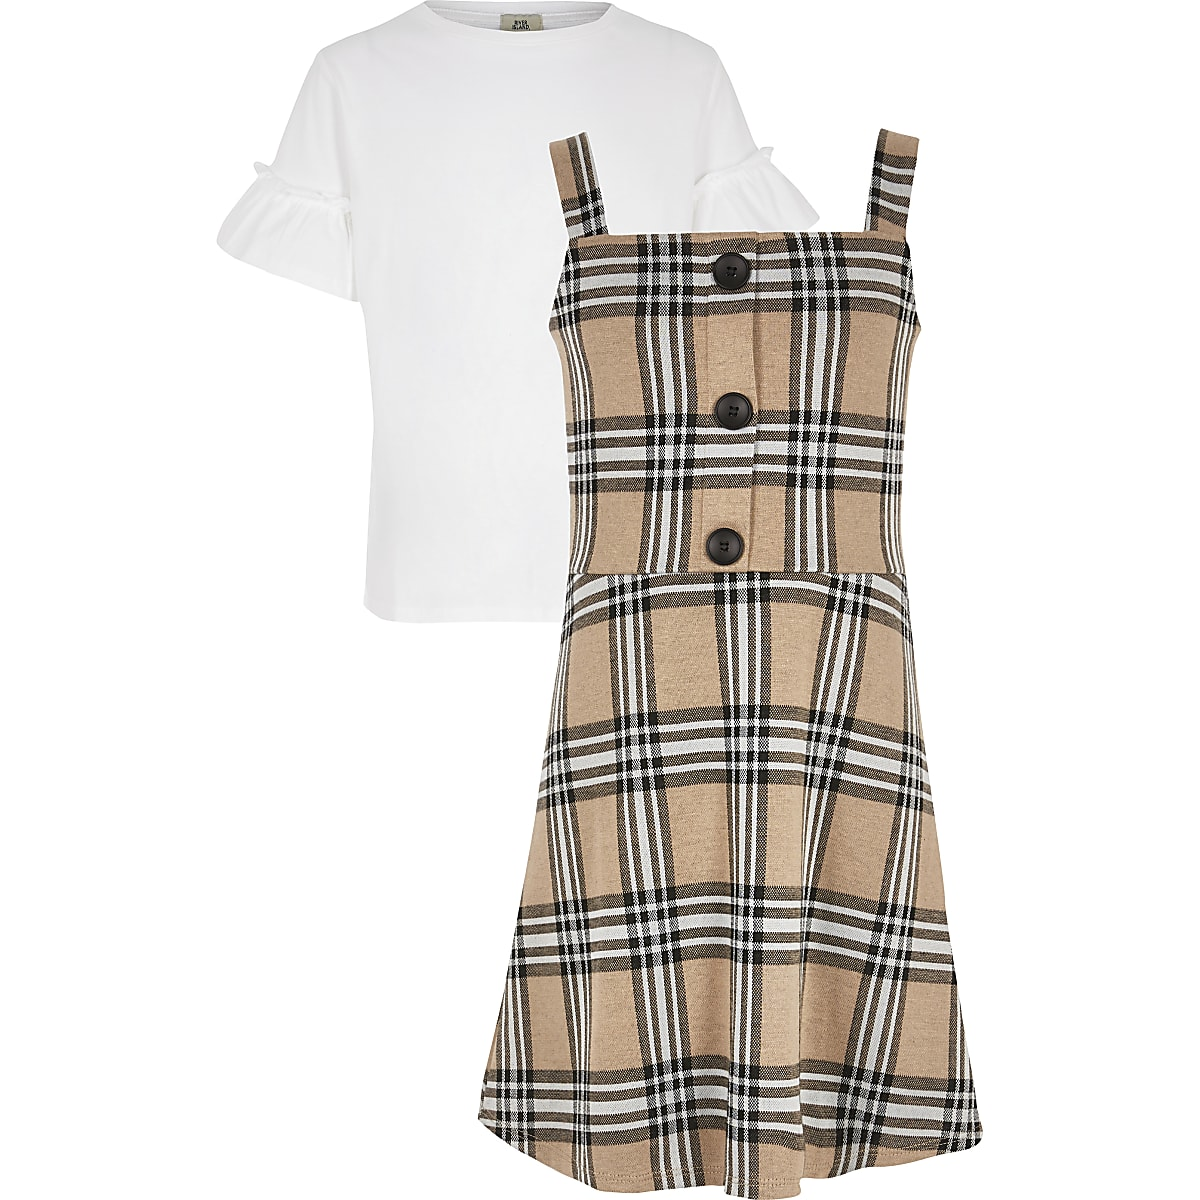 Girls brown check pinafore outfit